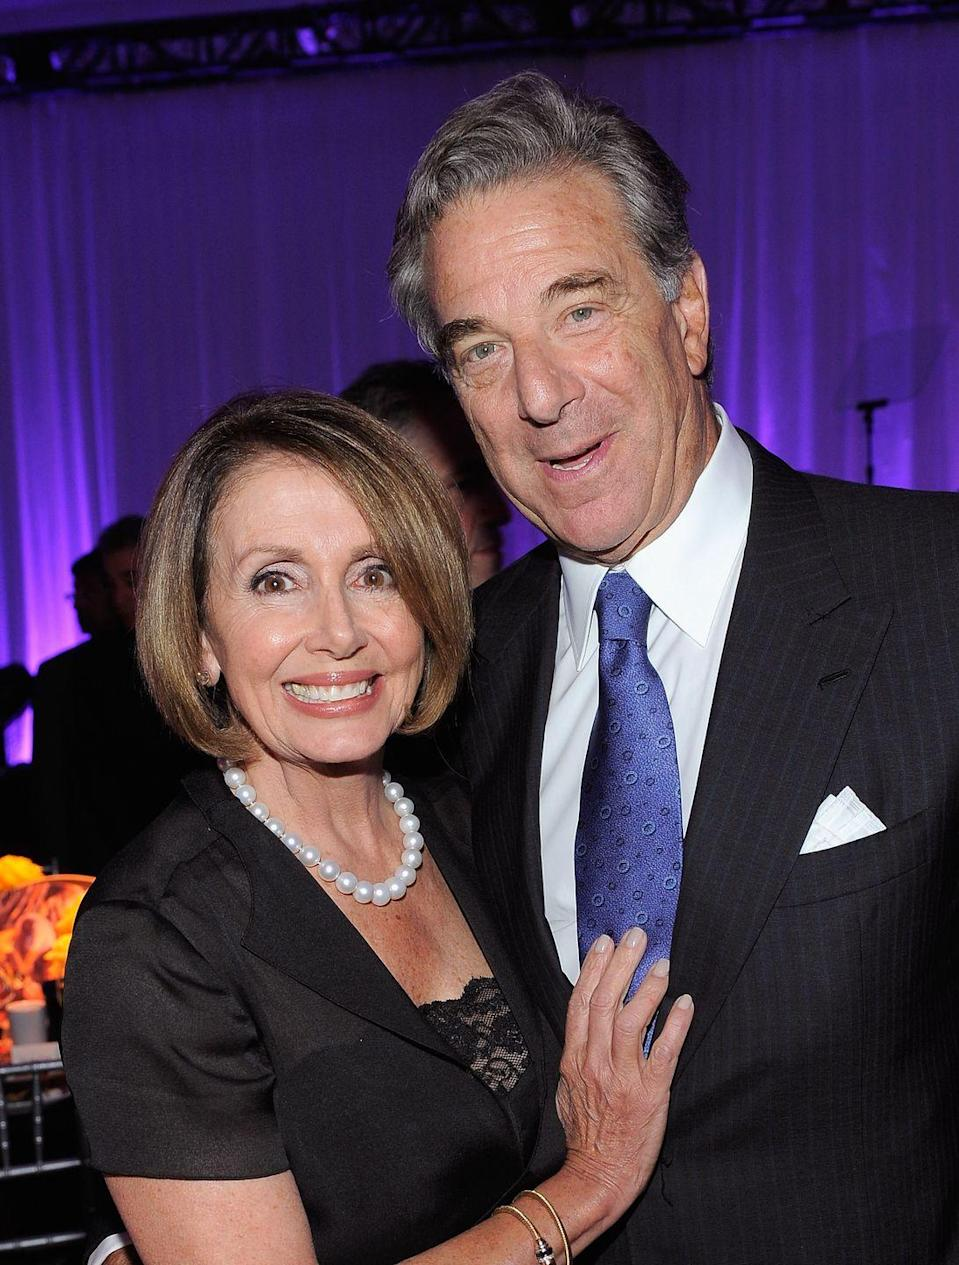 <p>Nancy and Paul Pelosi attend Tony Bennett's 85th Birthday Gala Benefit for Exploring the Arts in New Y0rk.</p>